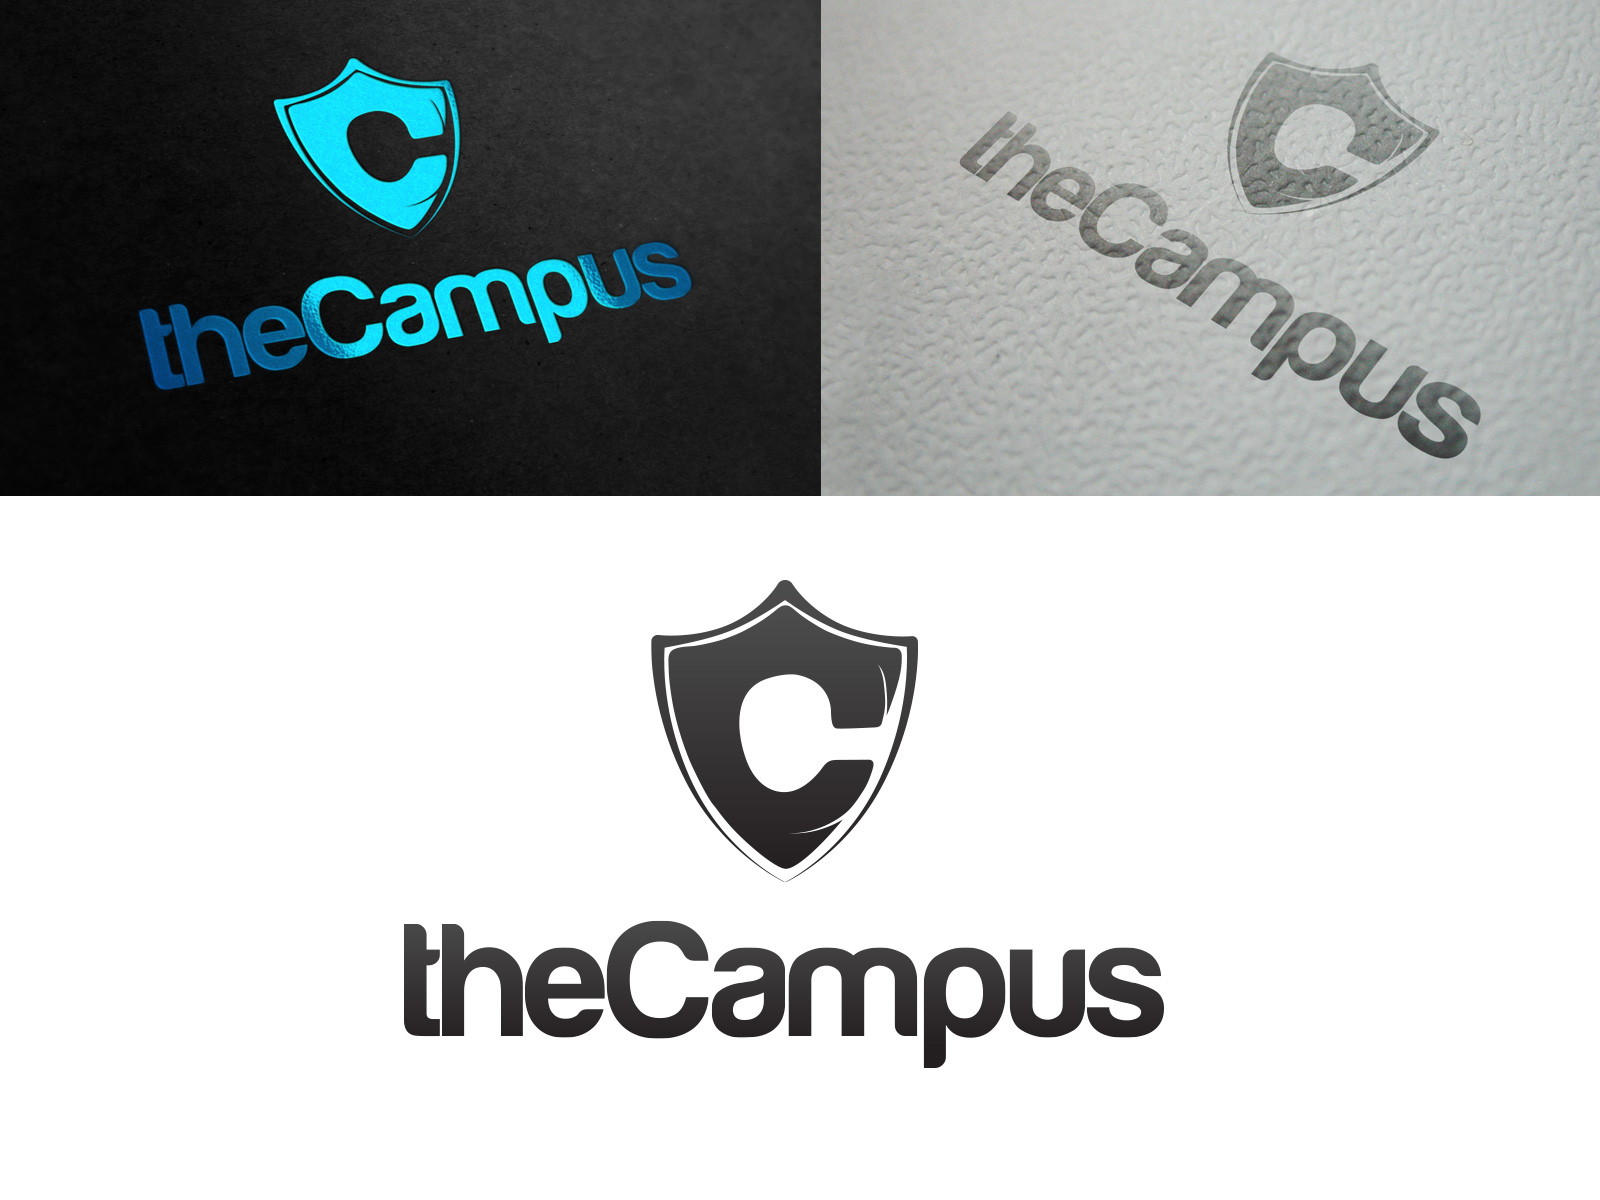 Logo Design by olii - Entry No. 99 in the Logo Design Contest theCampus Logo Design.